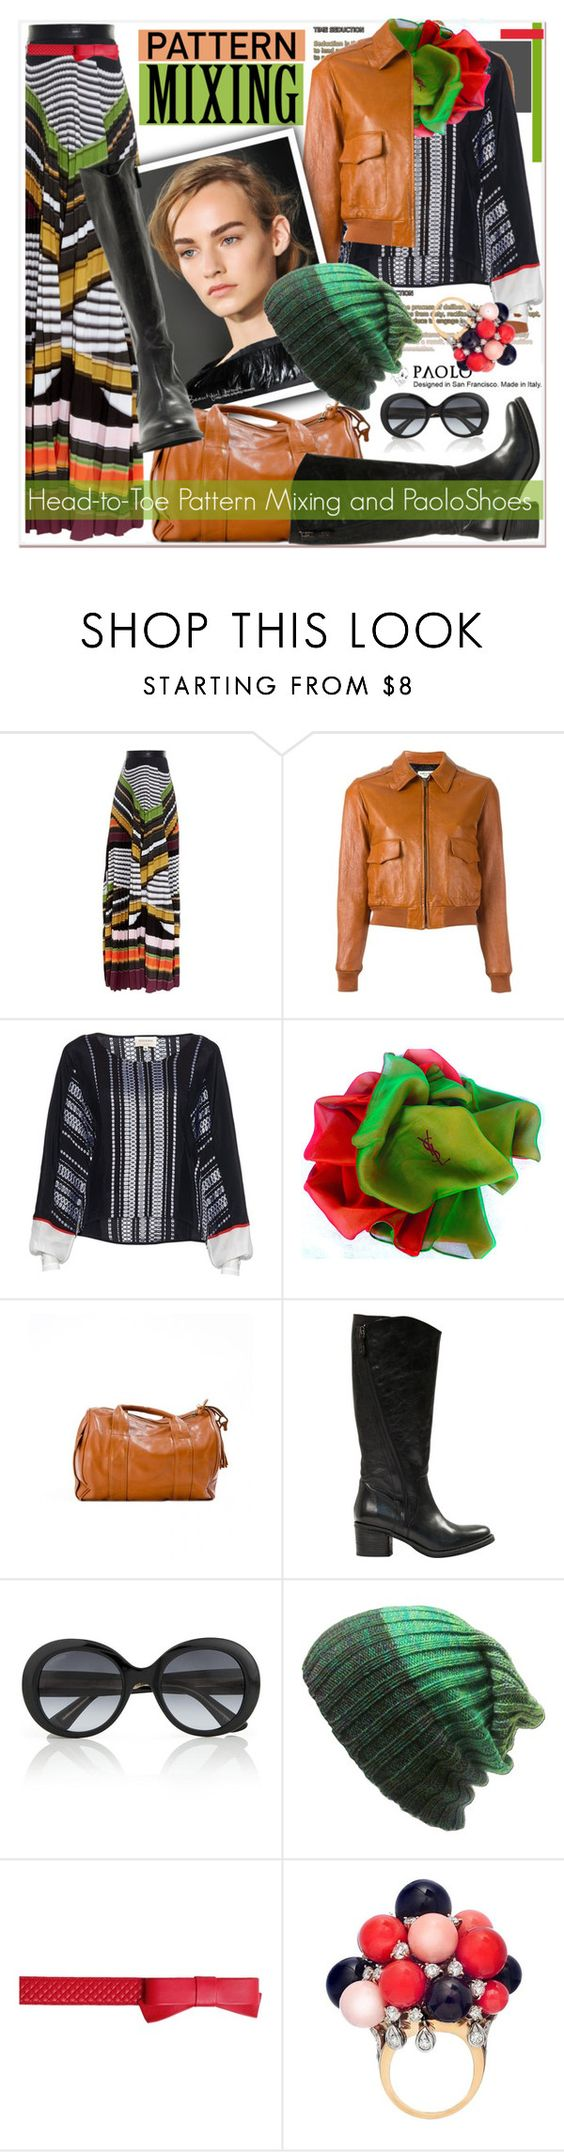 """Head-to-Toe Pattern Mixing and PaoloShoes"" by spenderellastyle ❤ liked on Polyvore featuring Mary Katrantzou, Yves Saint Laurent, Gucci and Boutique Moschino"